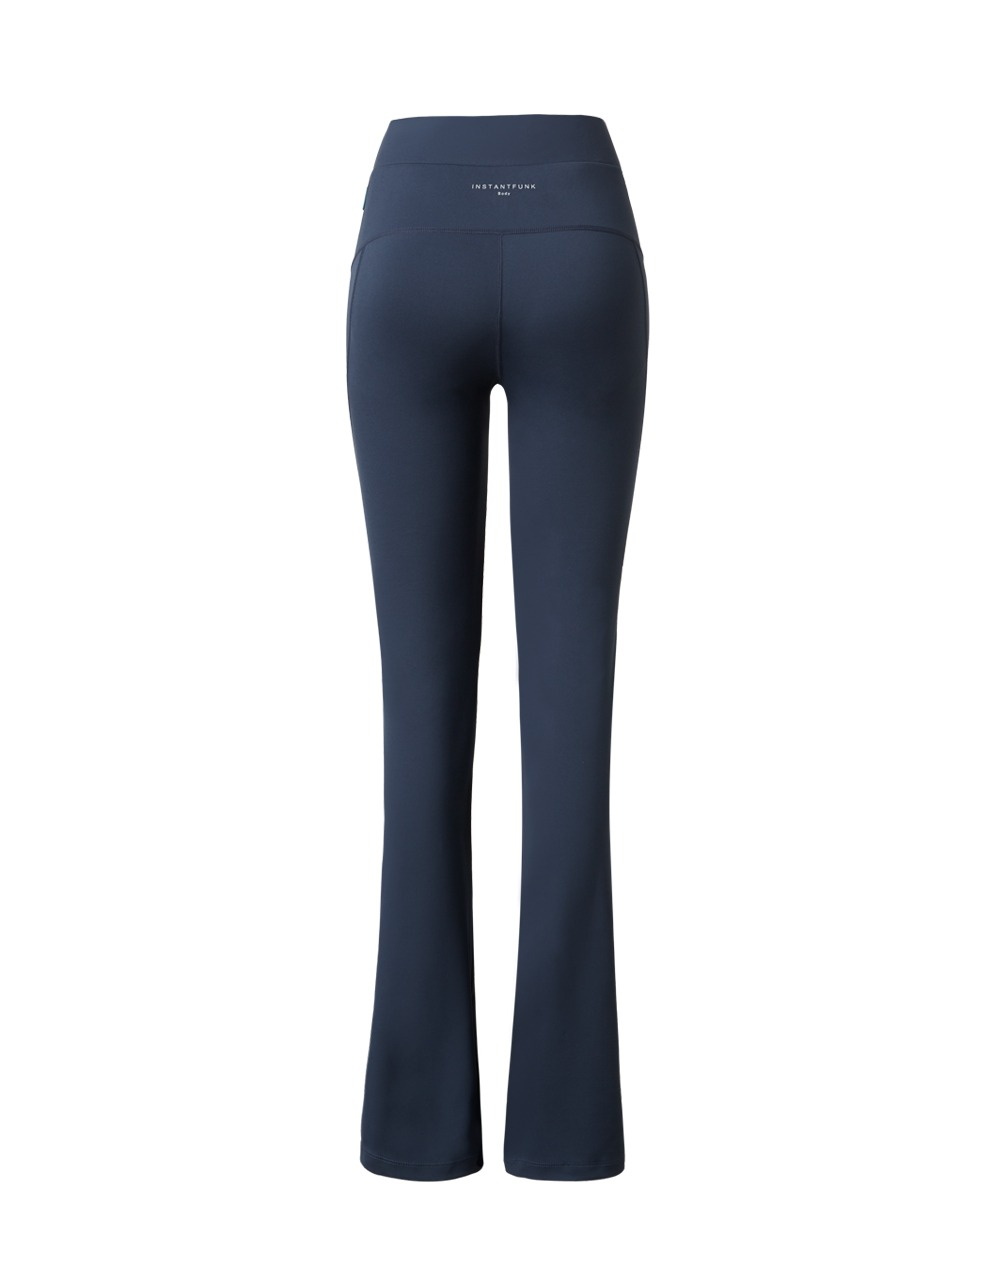 Volume Bootcut Leggings 01 - Charcoal